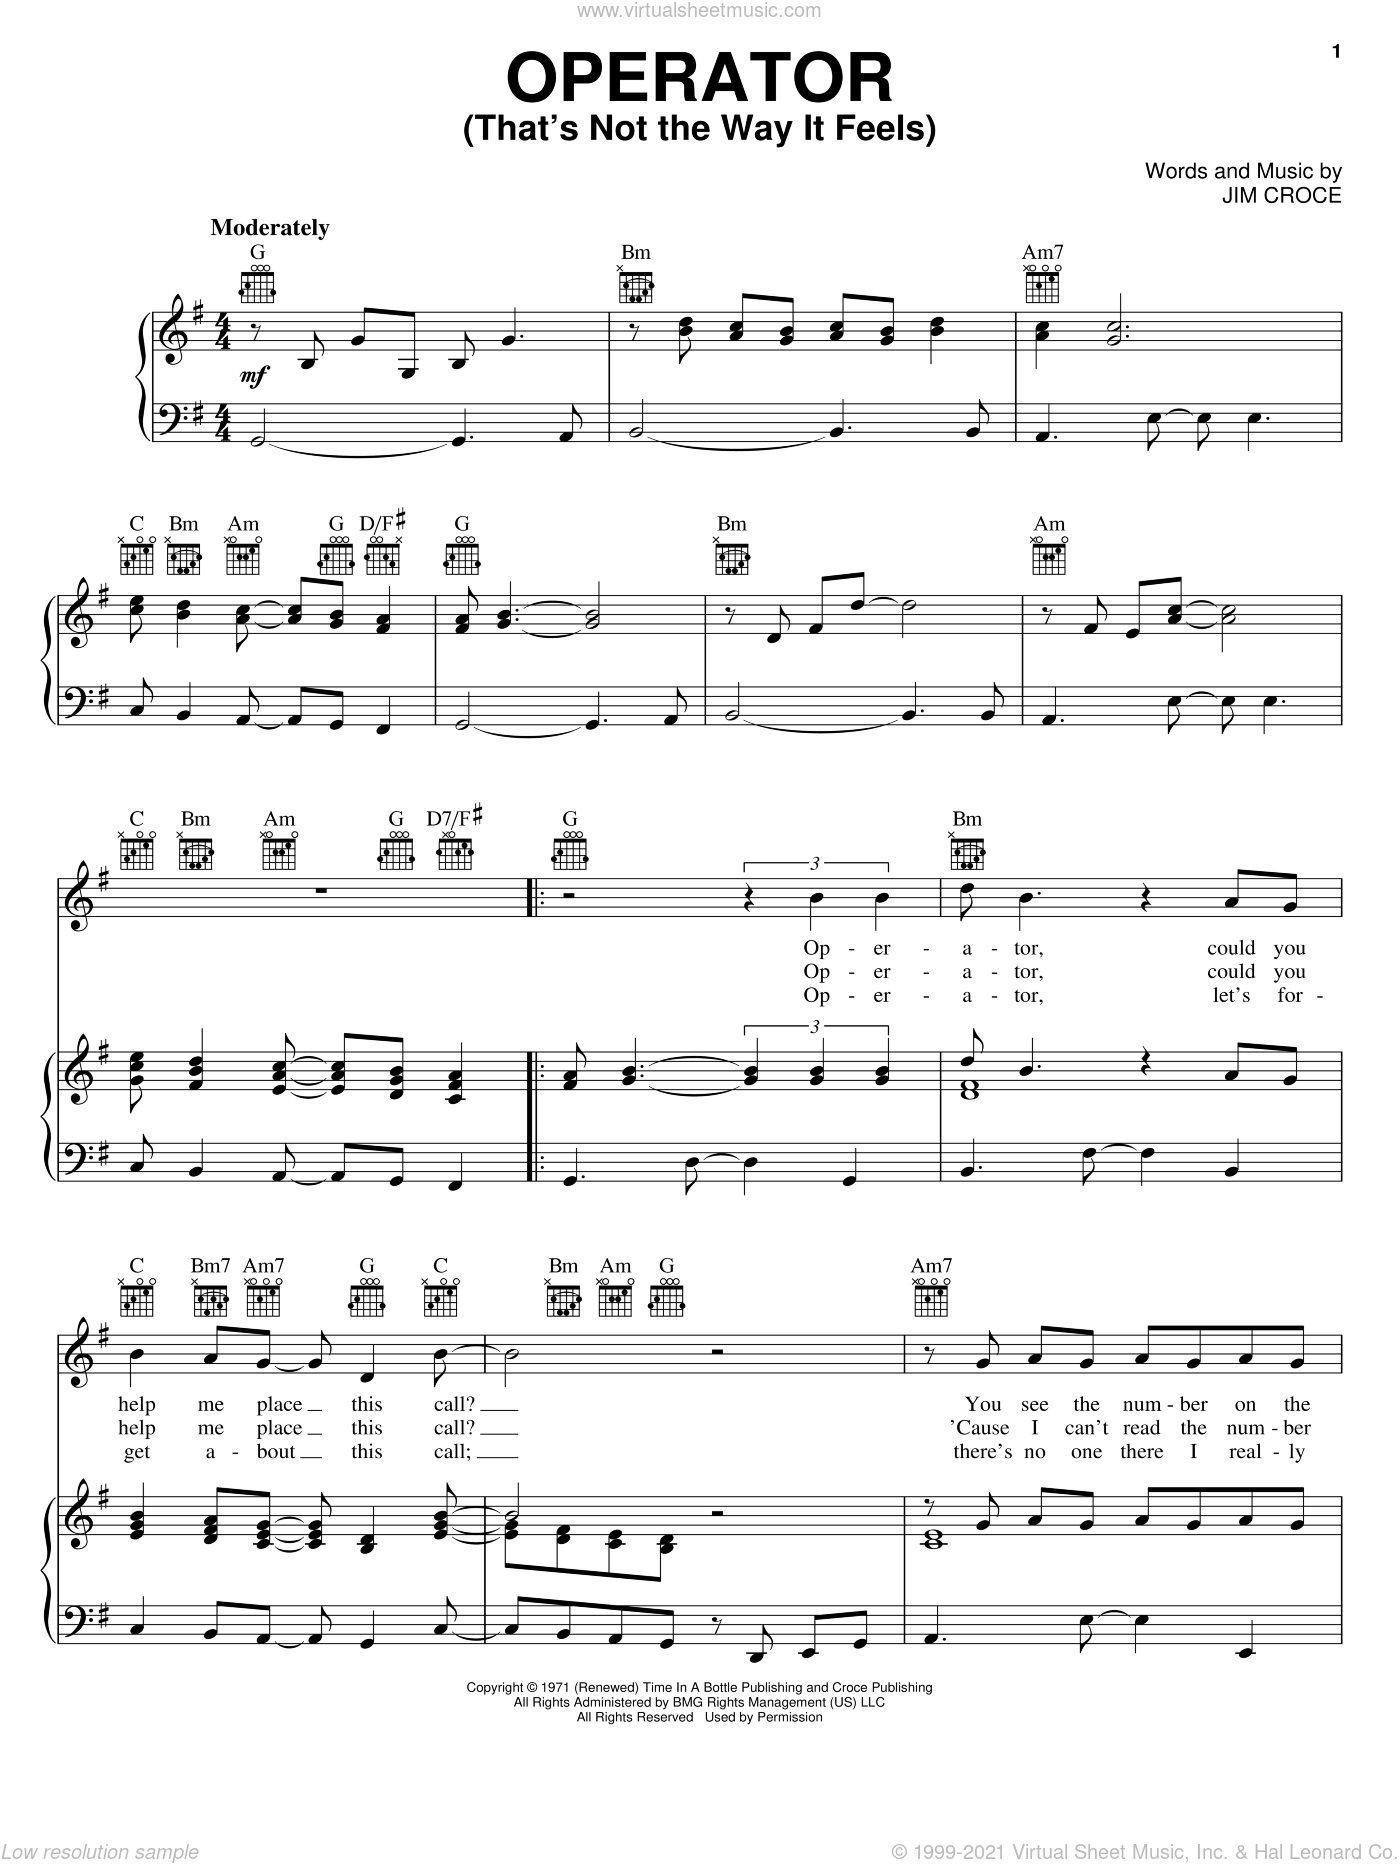 Operator (That's Not The Way It Feels) sheet music for voice, piano or guitar by Jim Croce, intermediate skill level